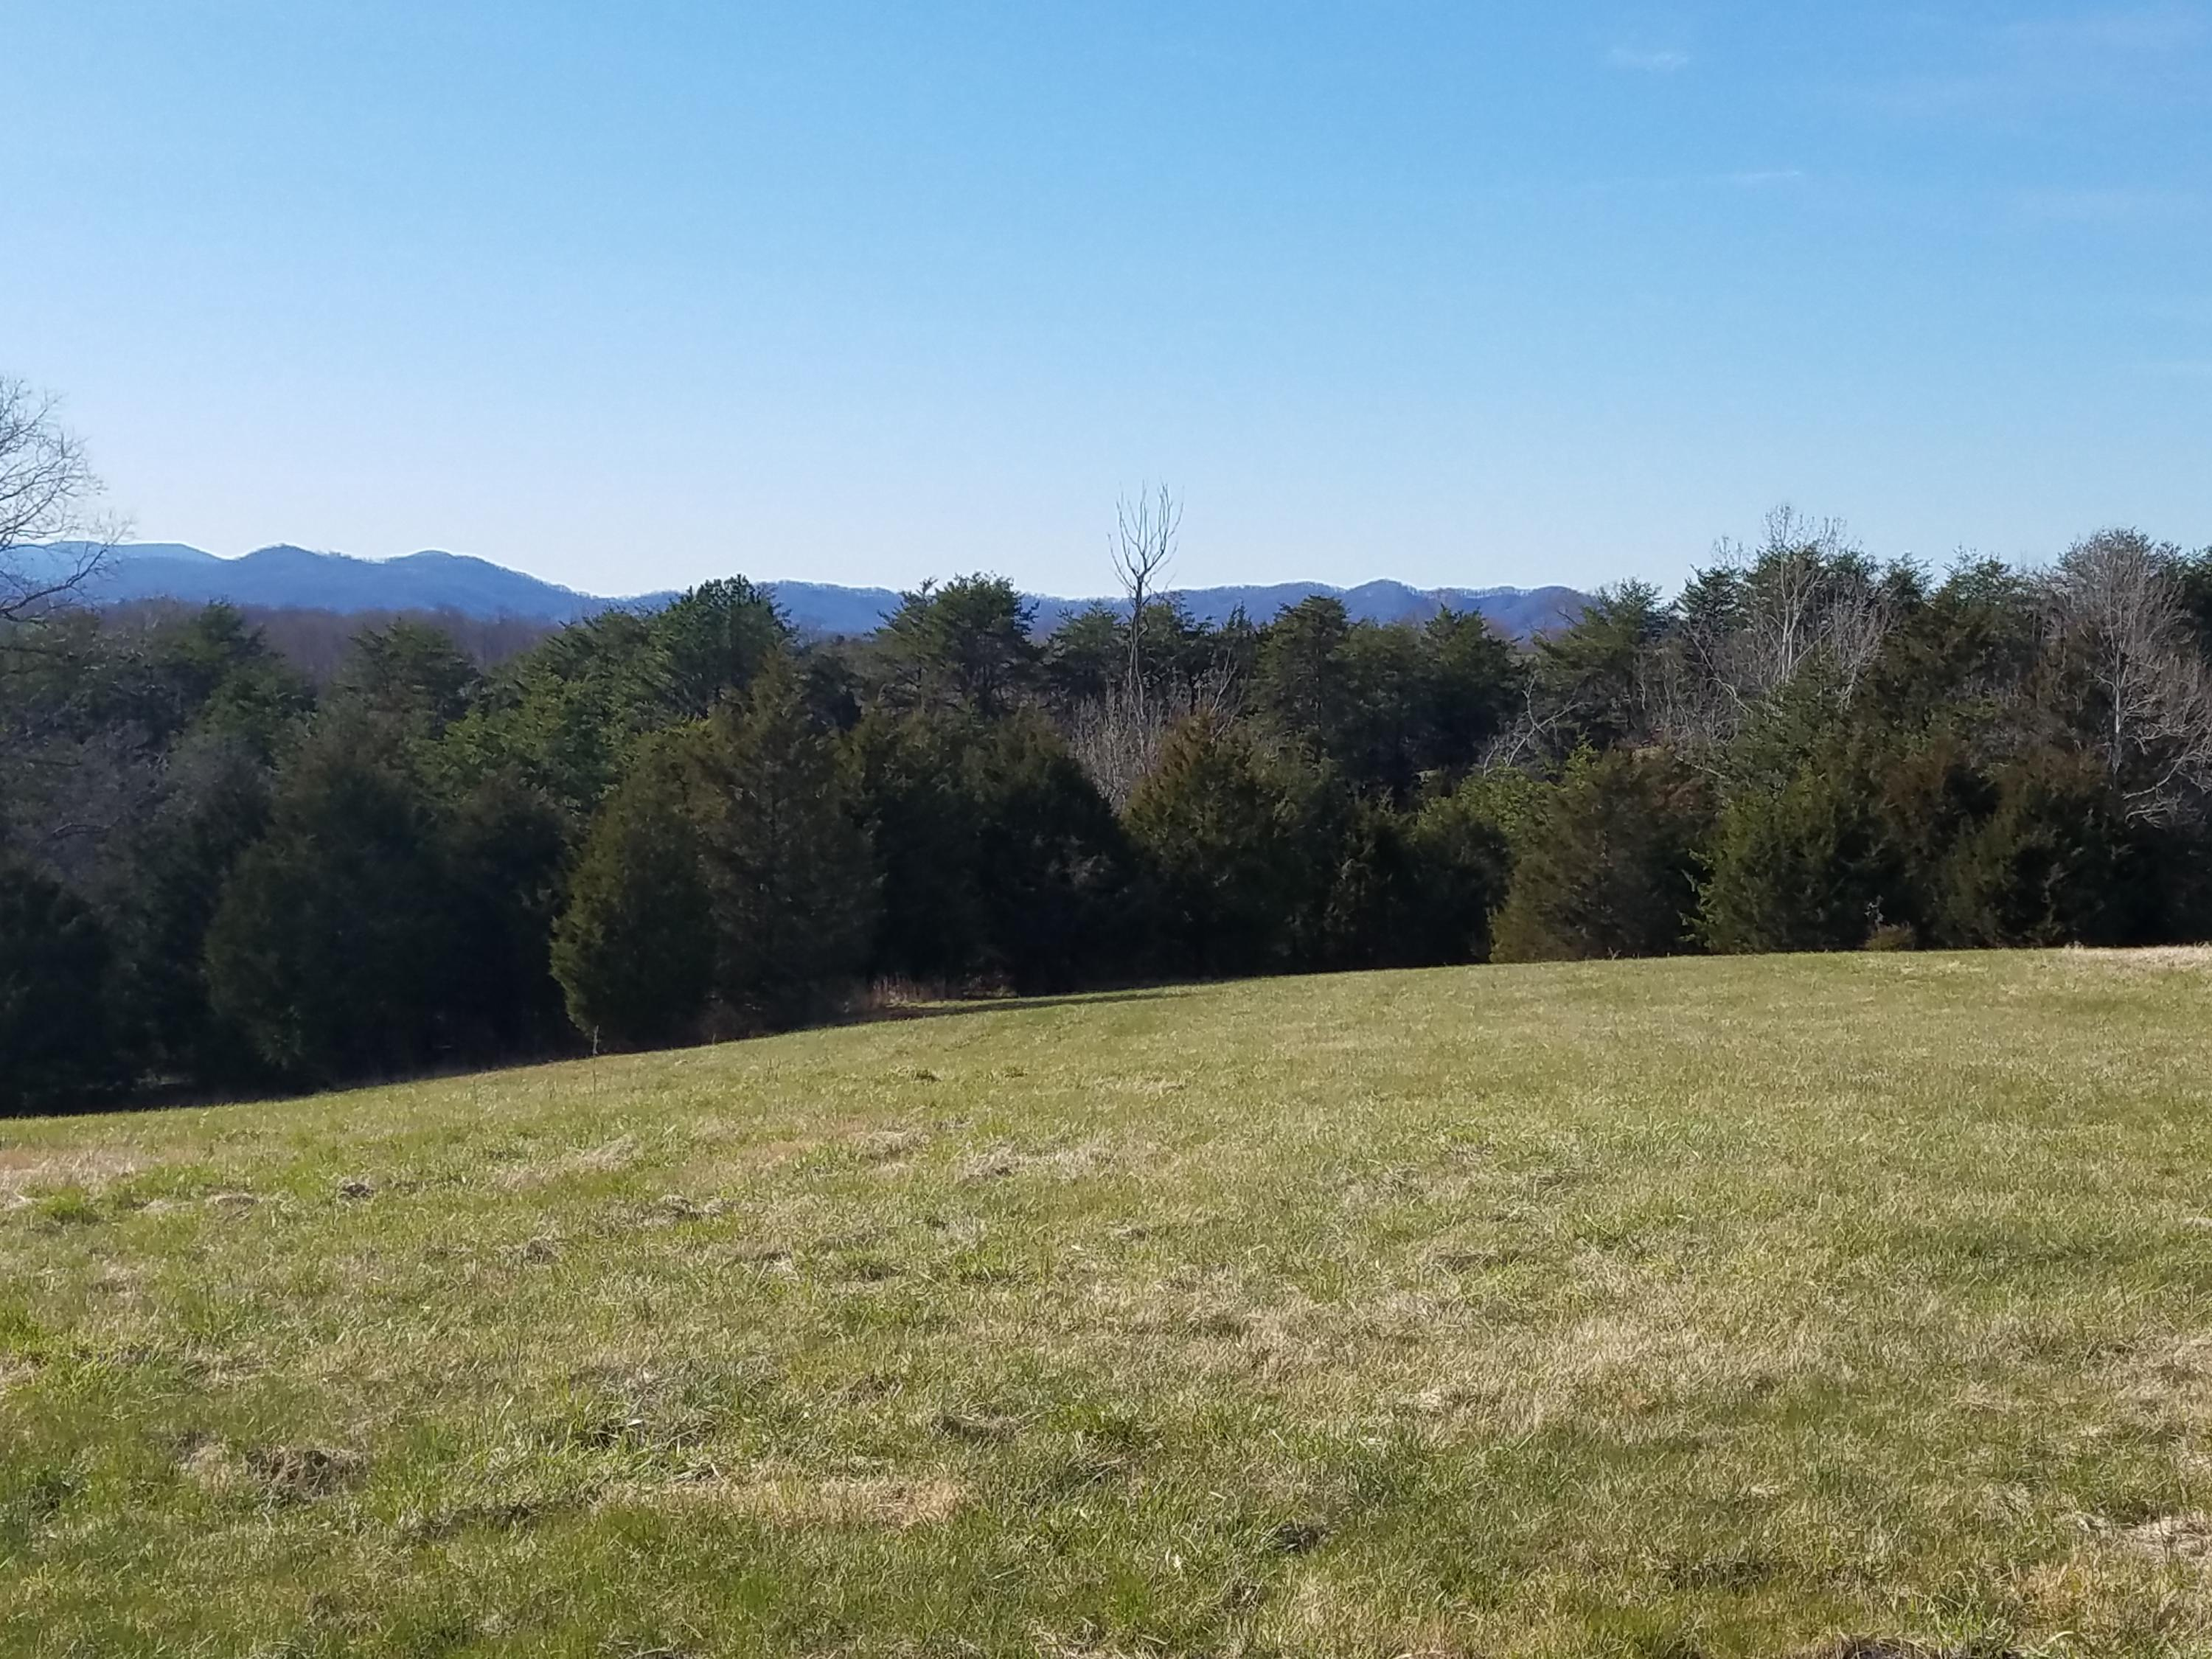 Photo of Lot 42 Halsey CT Wirtz VA 24184